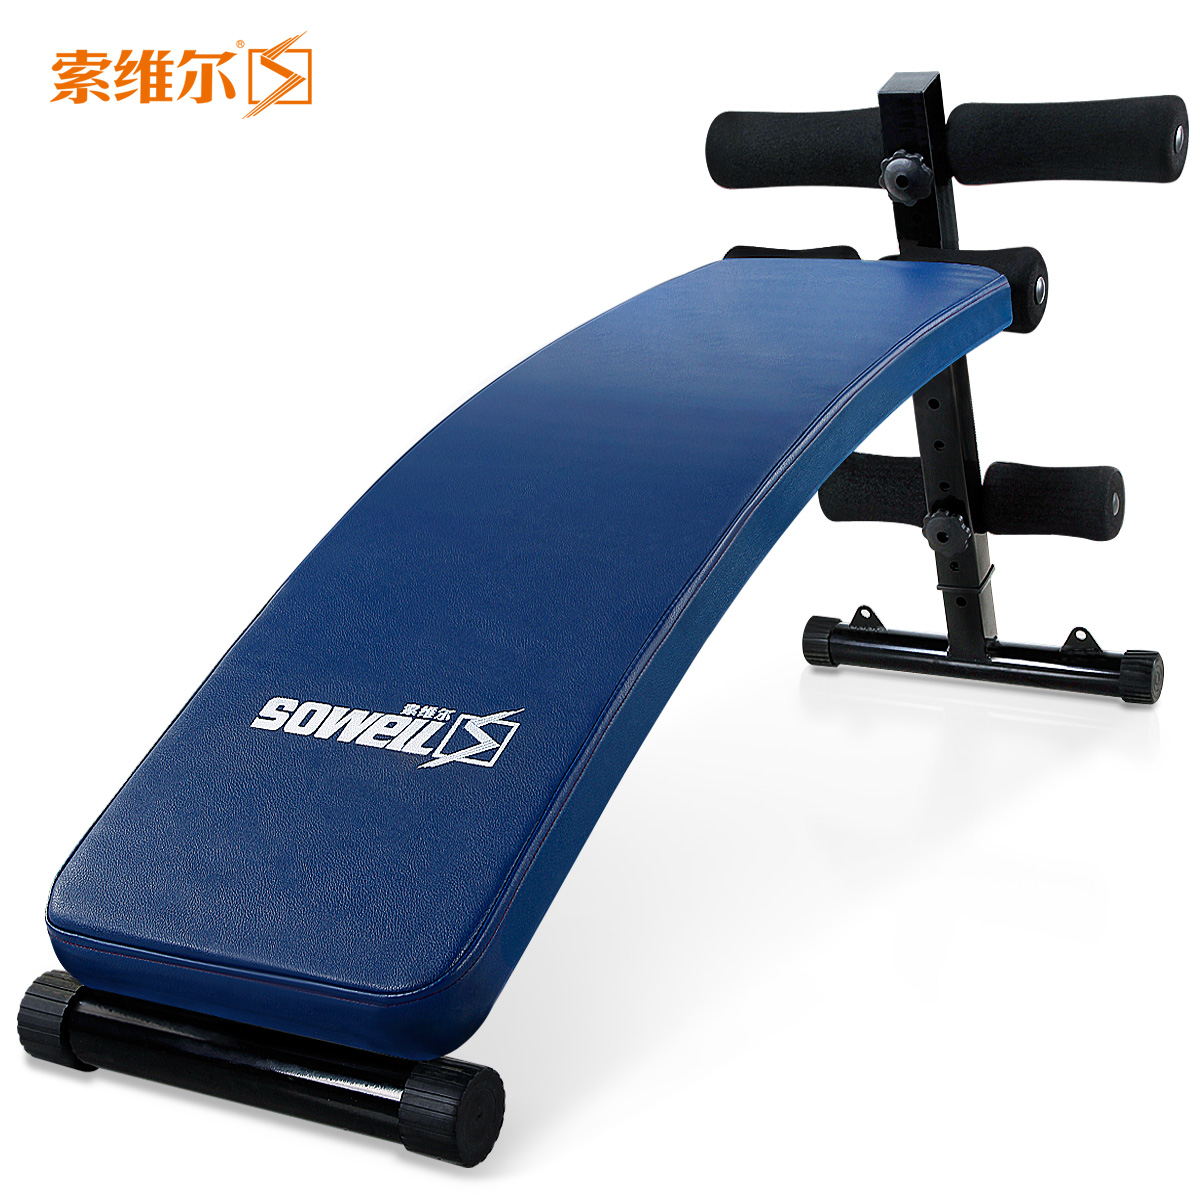 Sauville back panel crunches sit up abdominal fitness equipment home exercise dumbbell benches